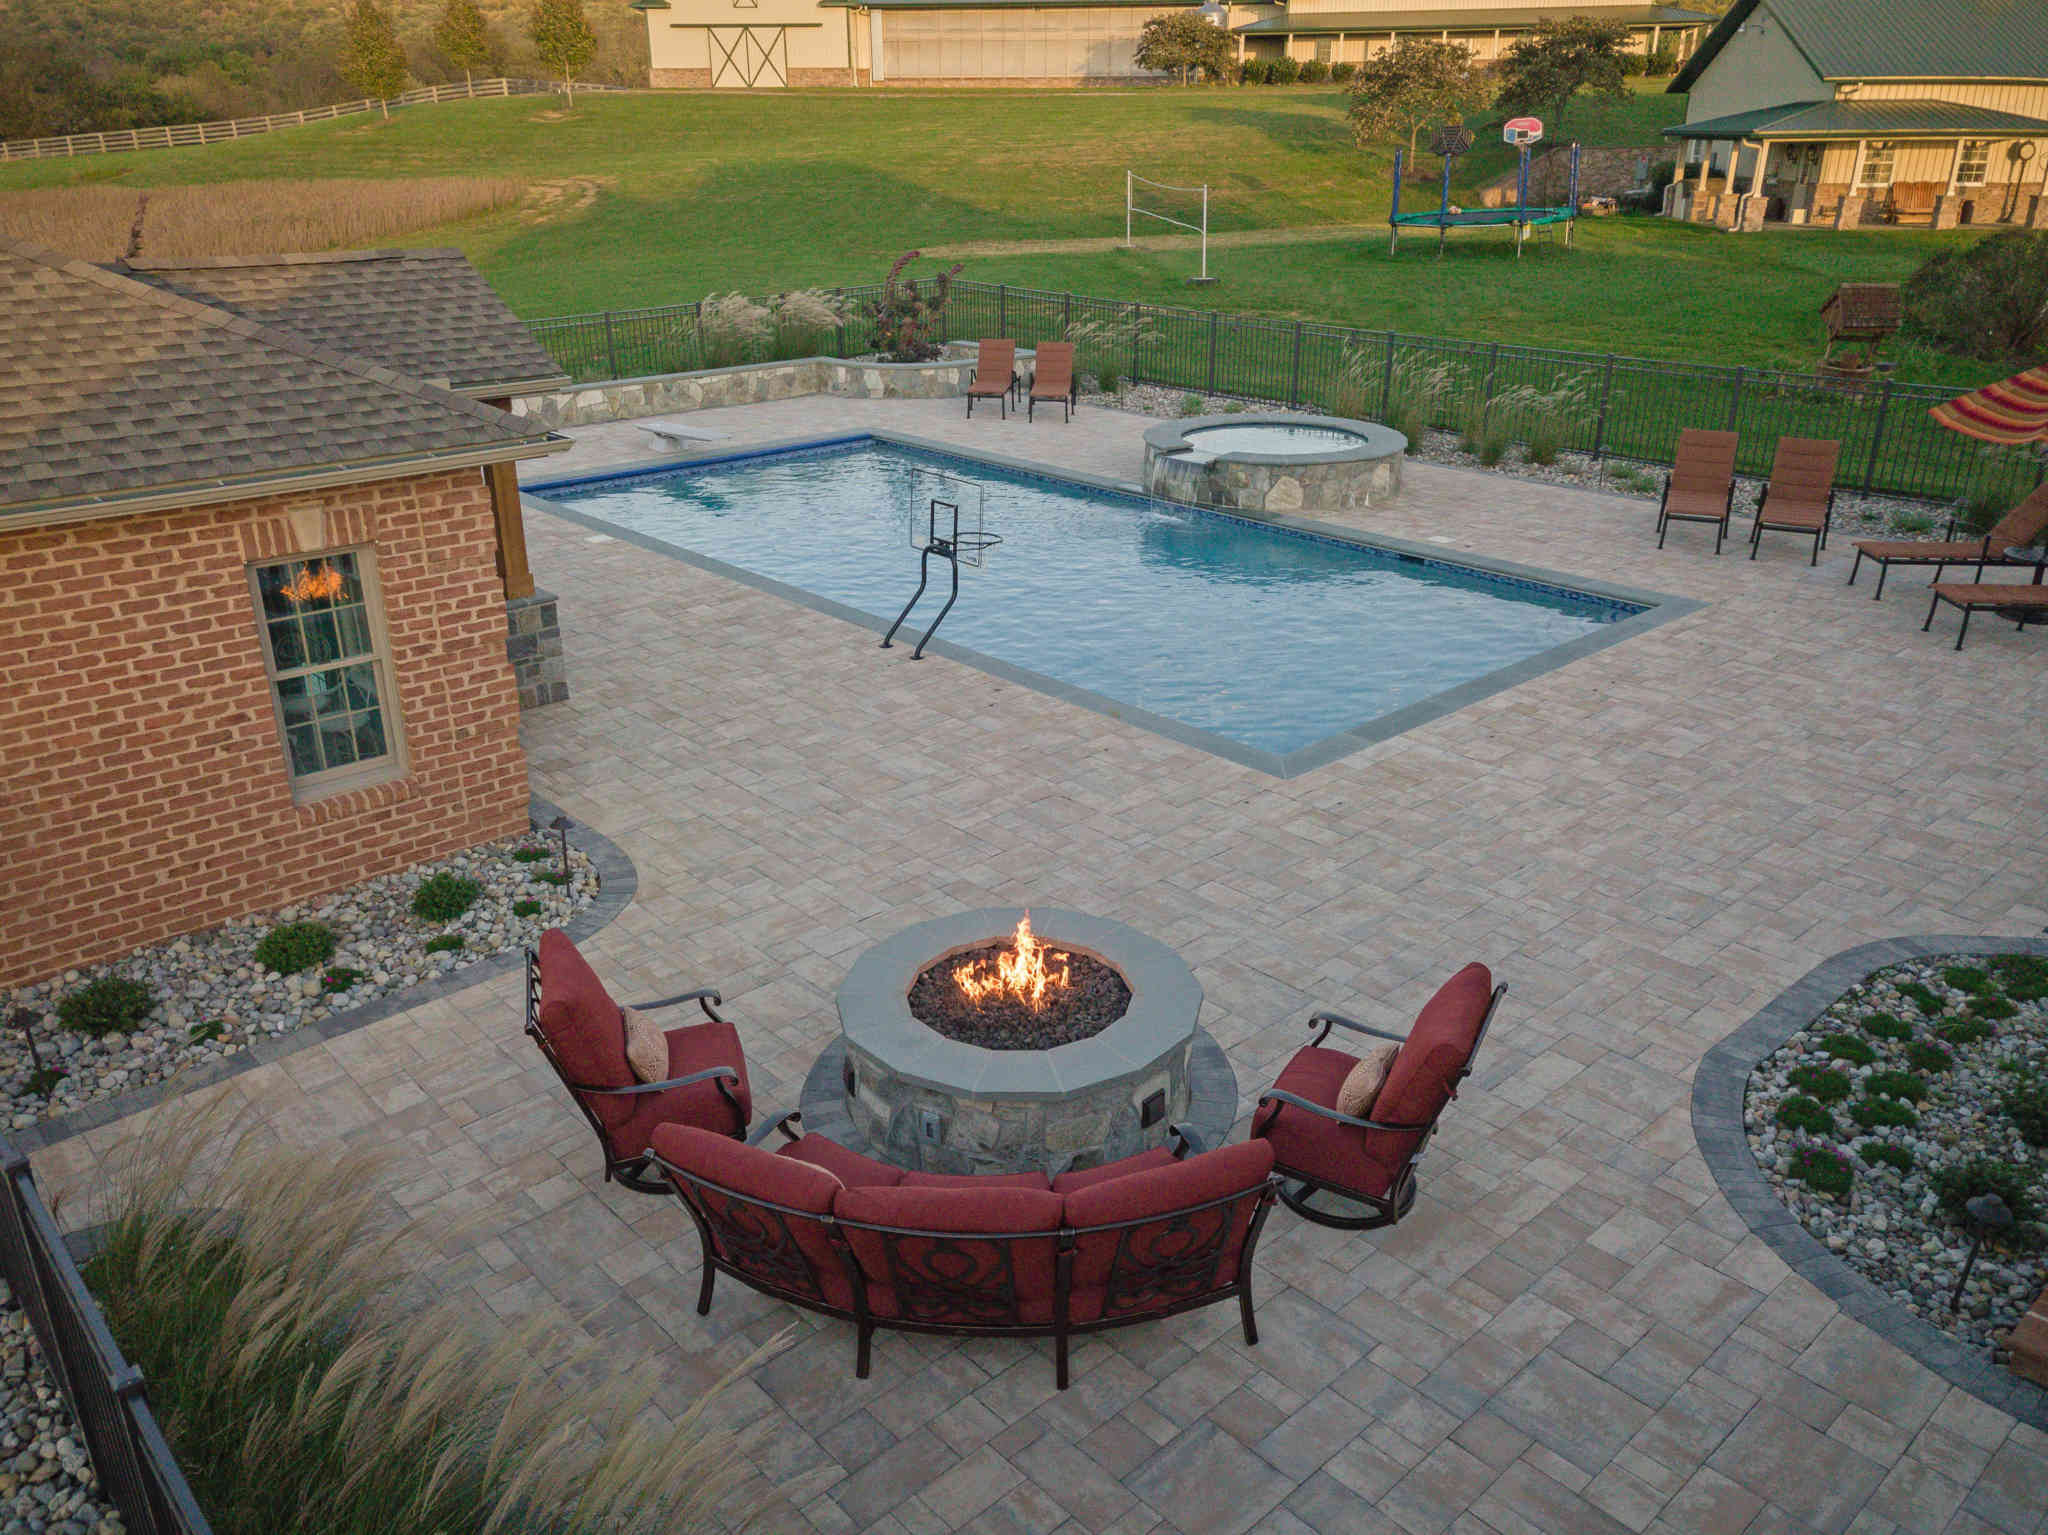 Rhine Landscaping, Construction, Swimming Pool Contractor in Montgomery, MD